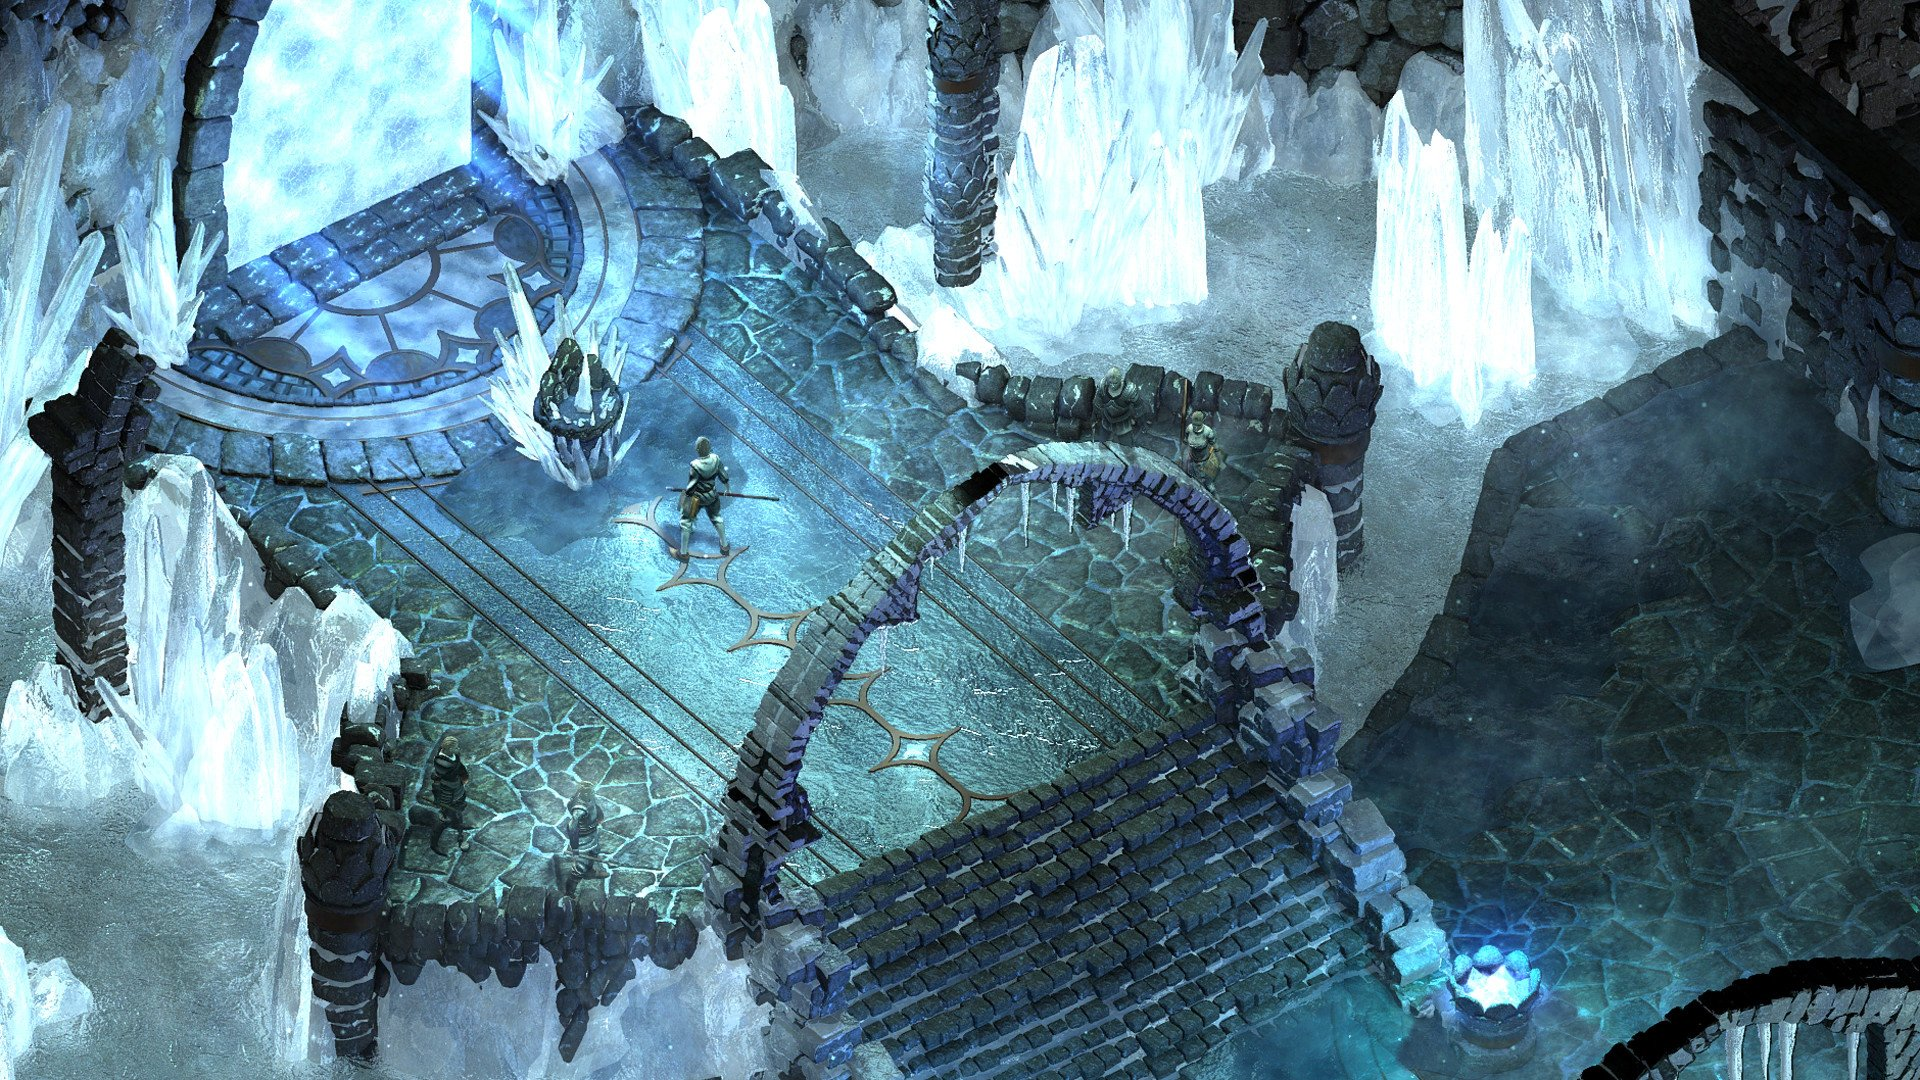 Pillars Of Eternity Background: PILLARS-OF-ETERNITY Fantasy Rpg Strategy Adventure Pillars